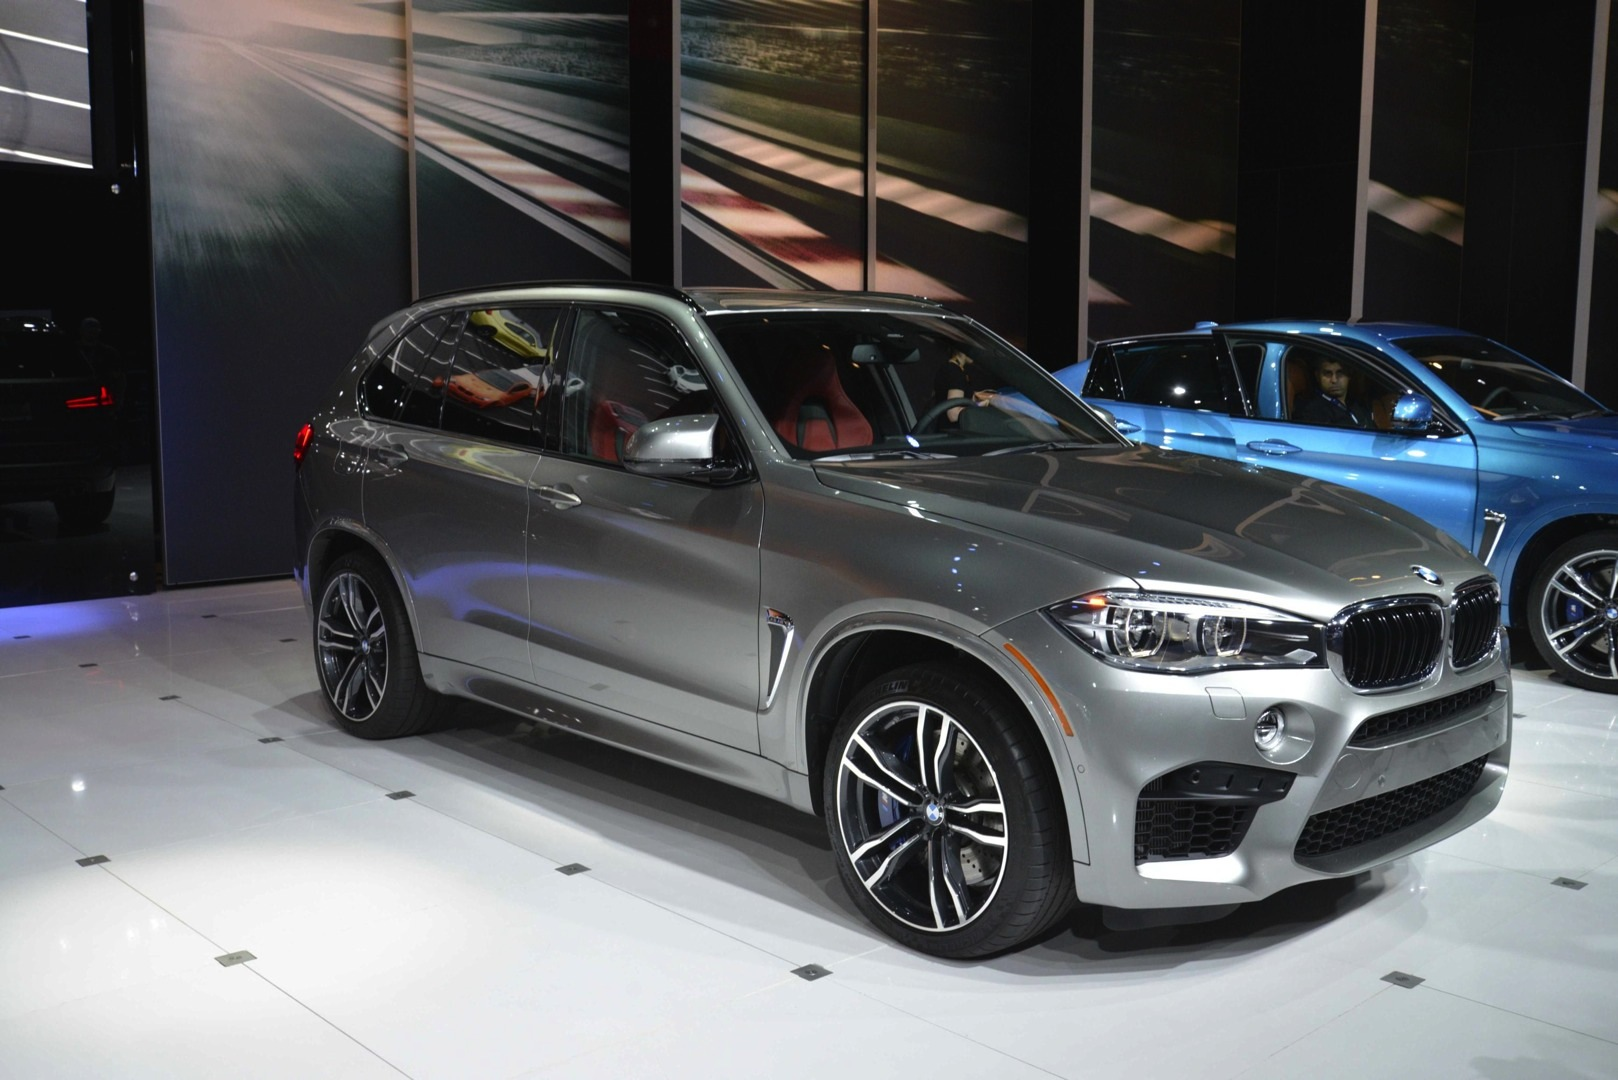 Bmw X5 M And X6 Show Up In La With New Colors